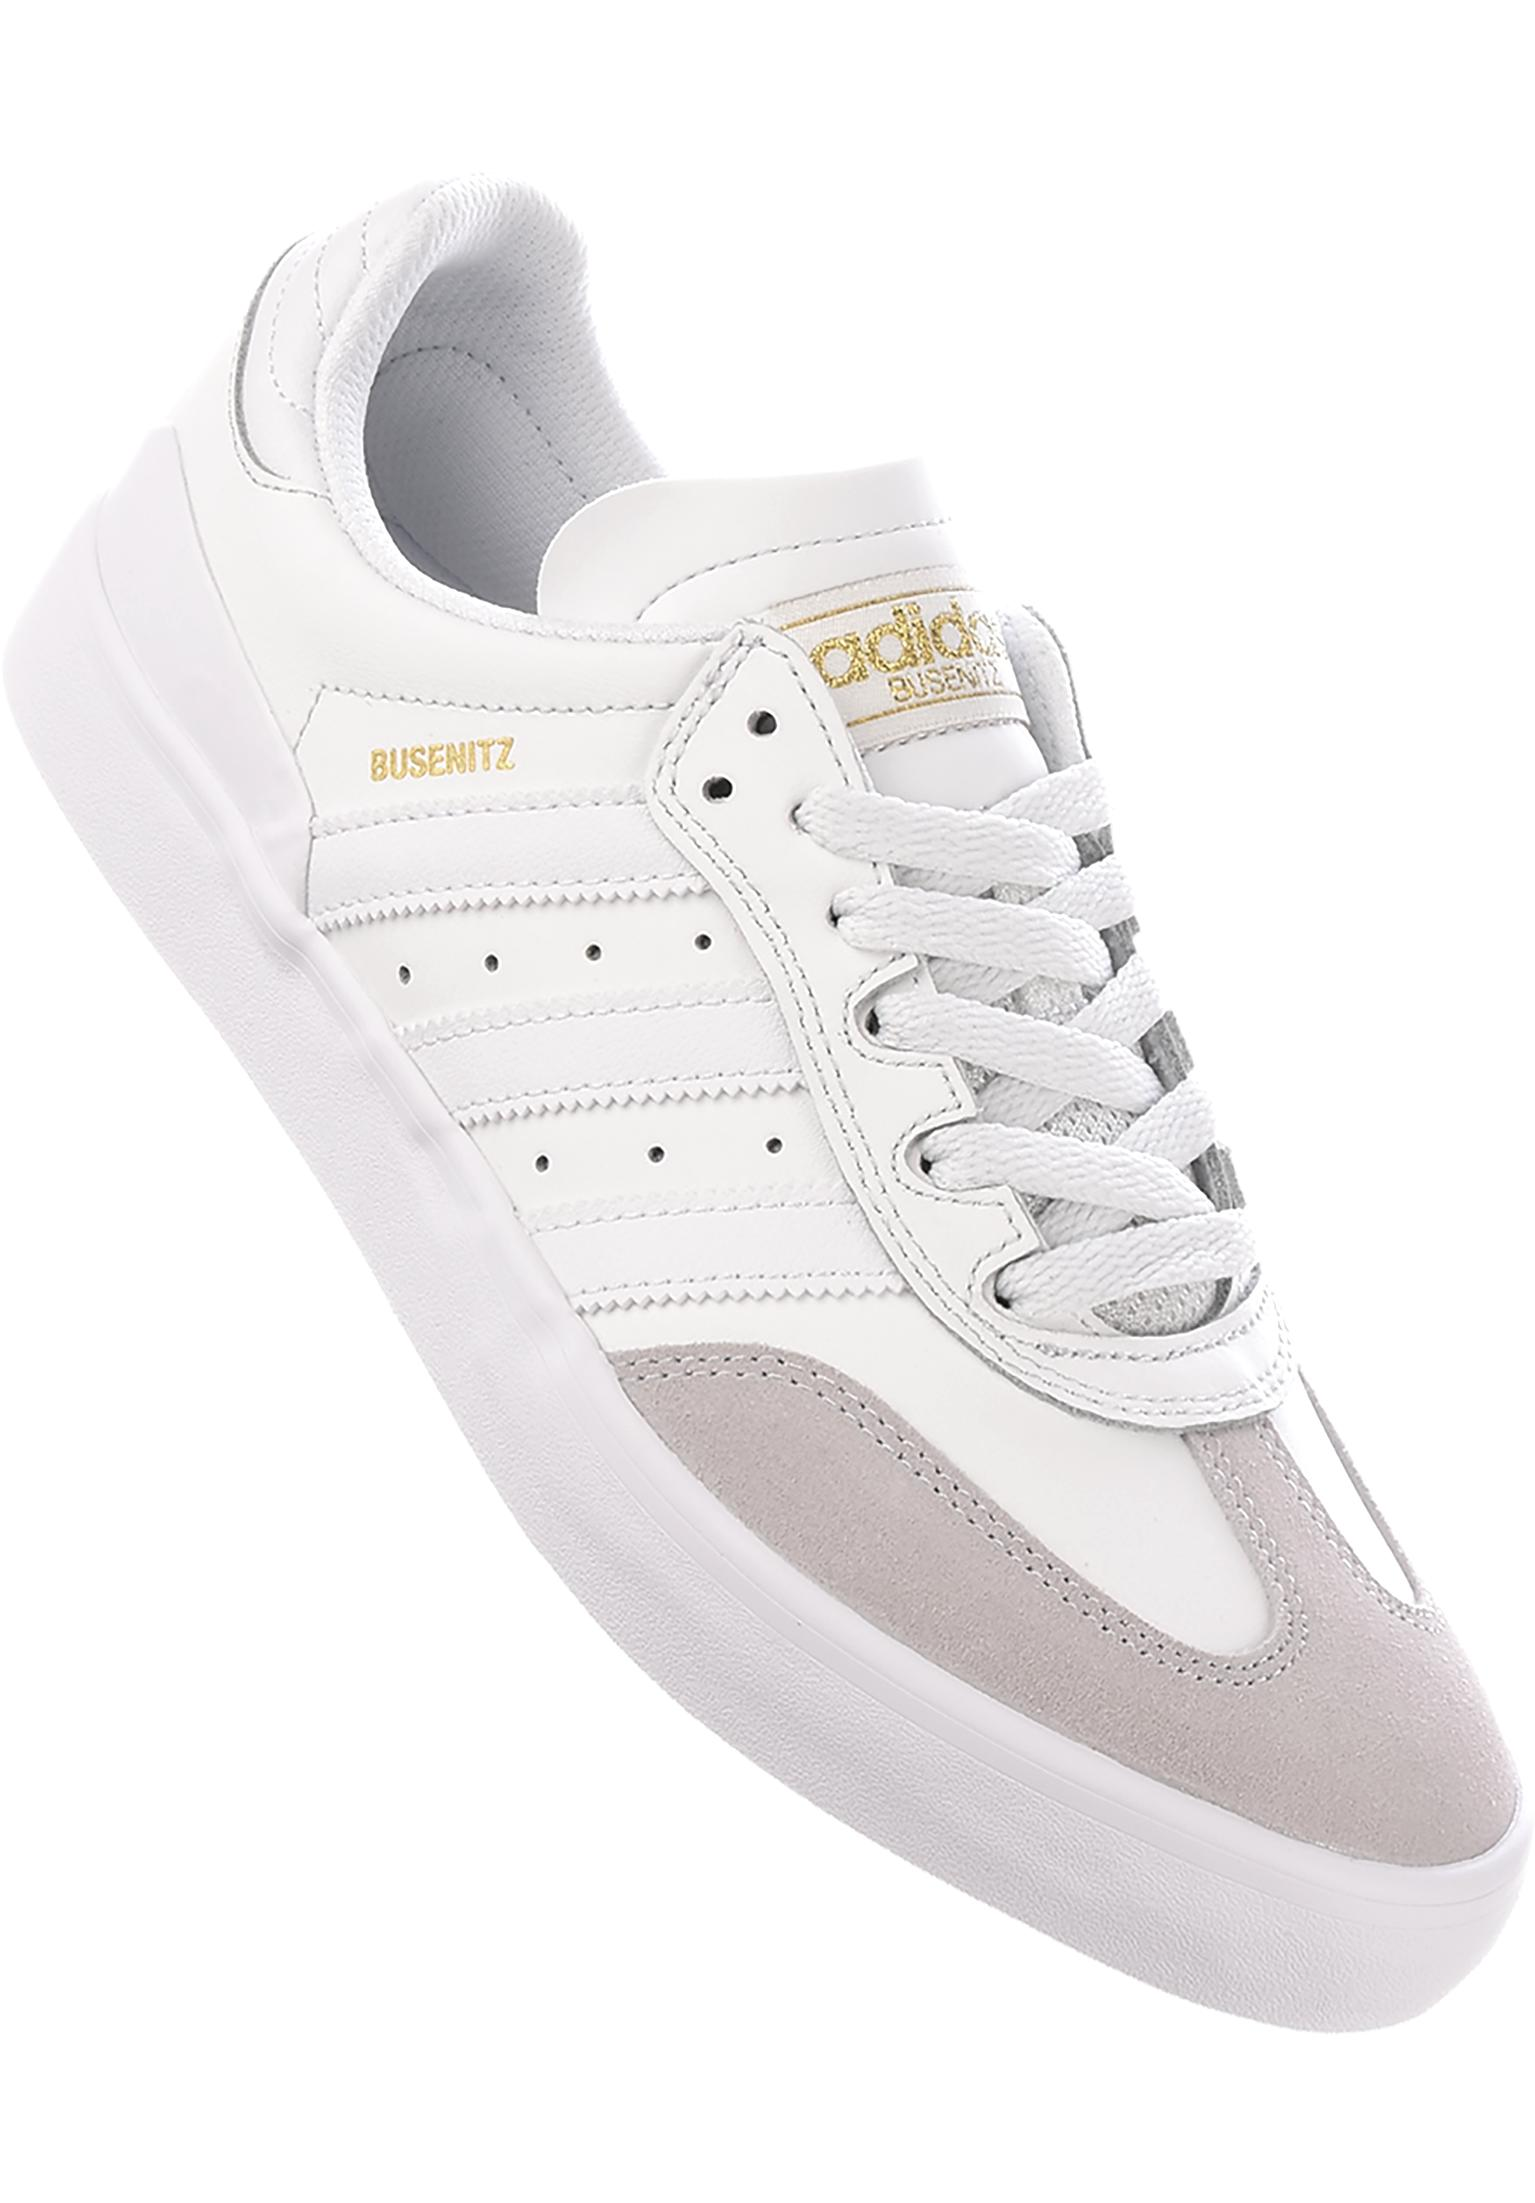 online store 1a5ed 4b3ea Busenitz Vulc RX adidas-skateboarding All Shoes in crystalwhite-white for  Men  Titus